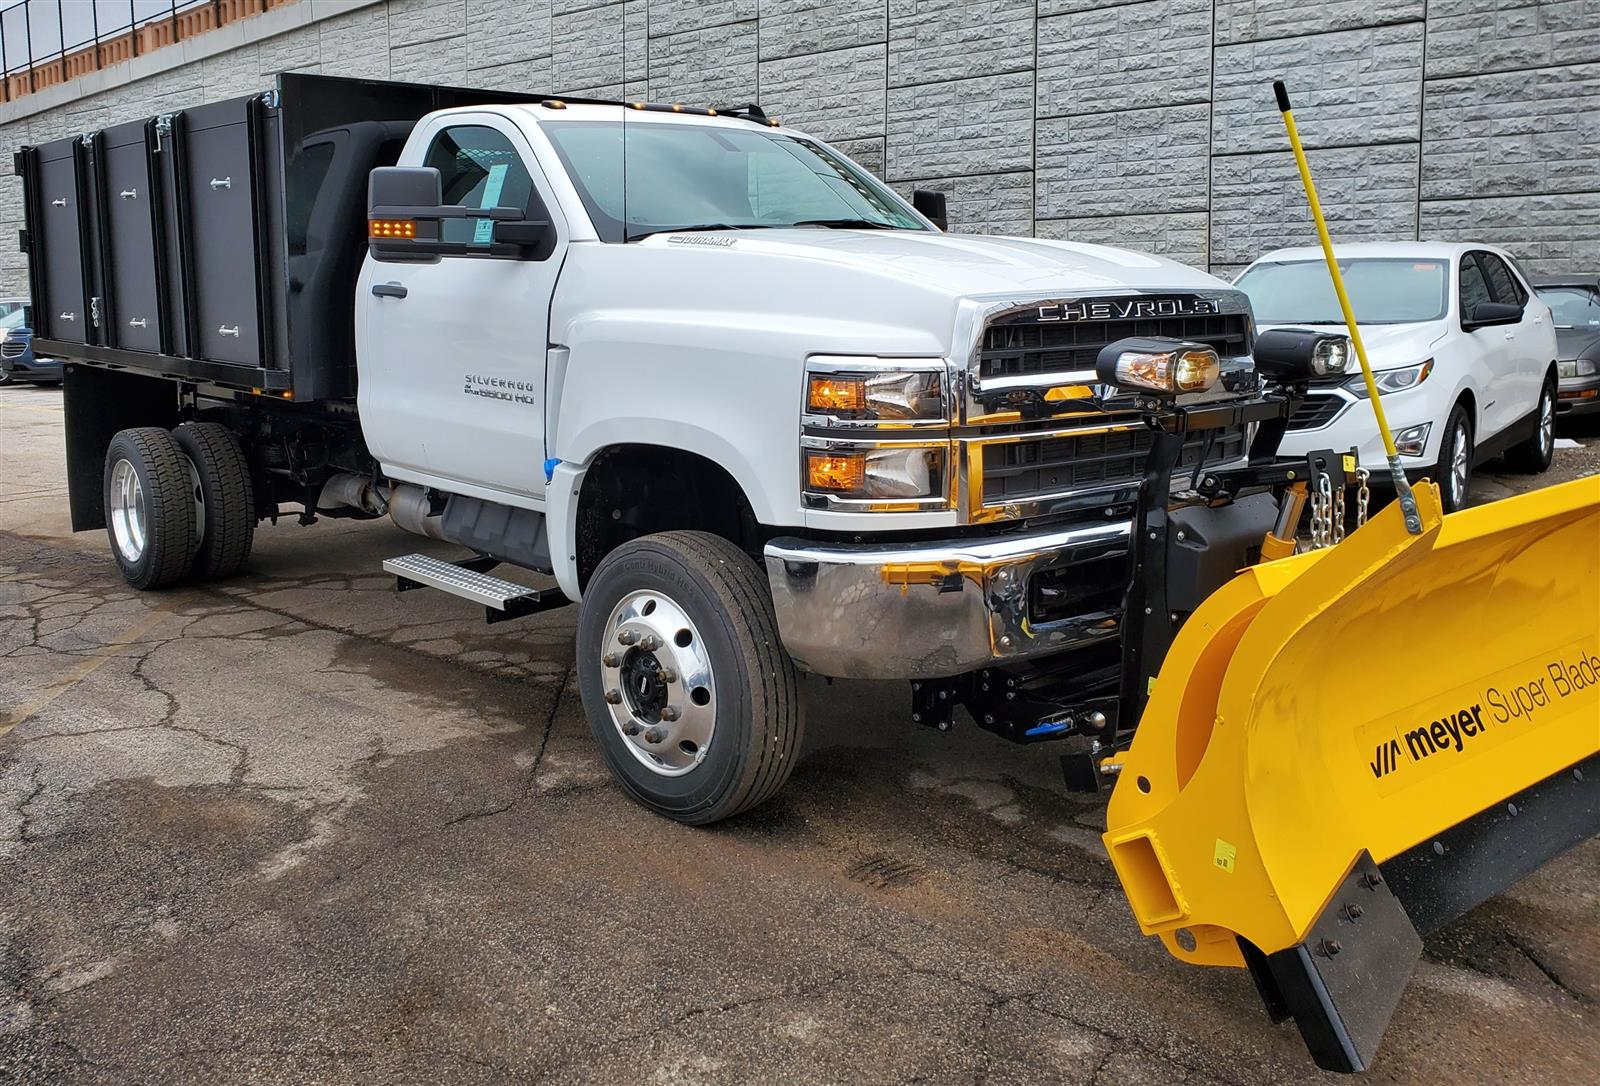 2019 Chevrolet Silverado Medium Duty Regular Cab DRW 4x4, Landscape dump w/ Snow plow and salt spreader #191025 - photo 3